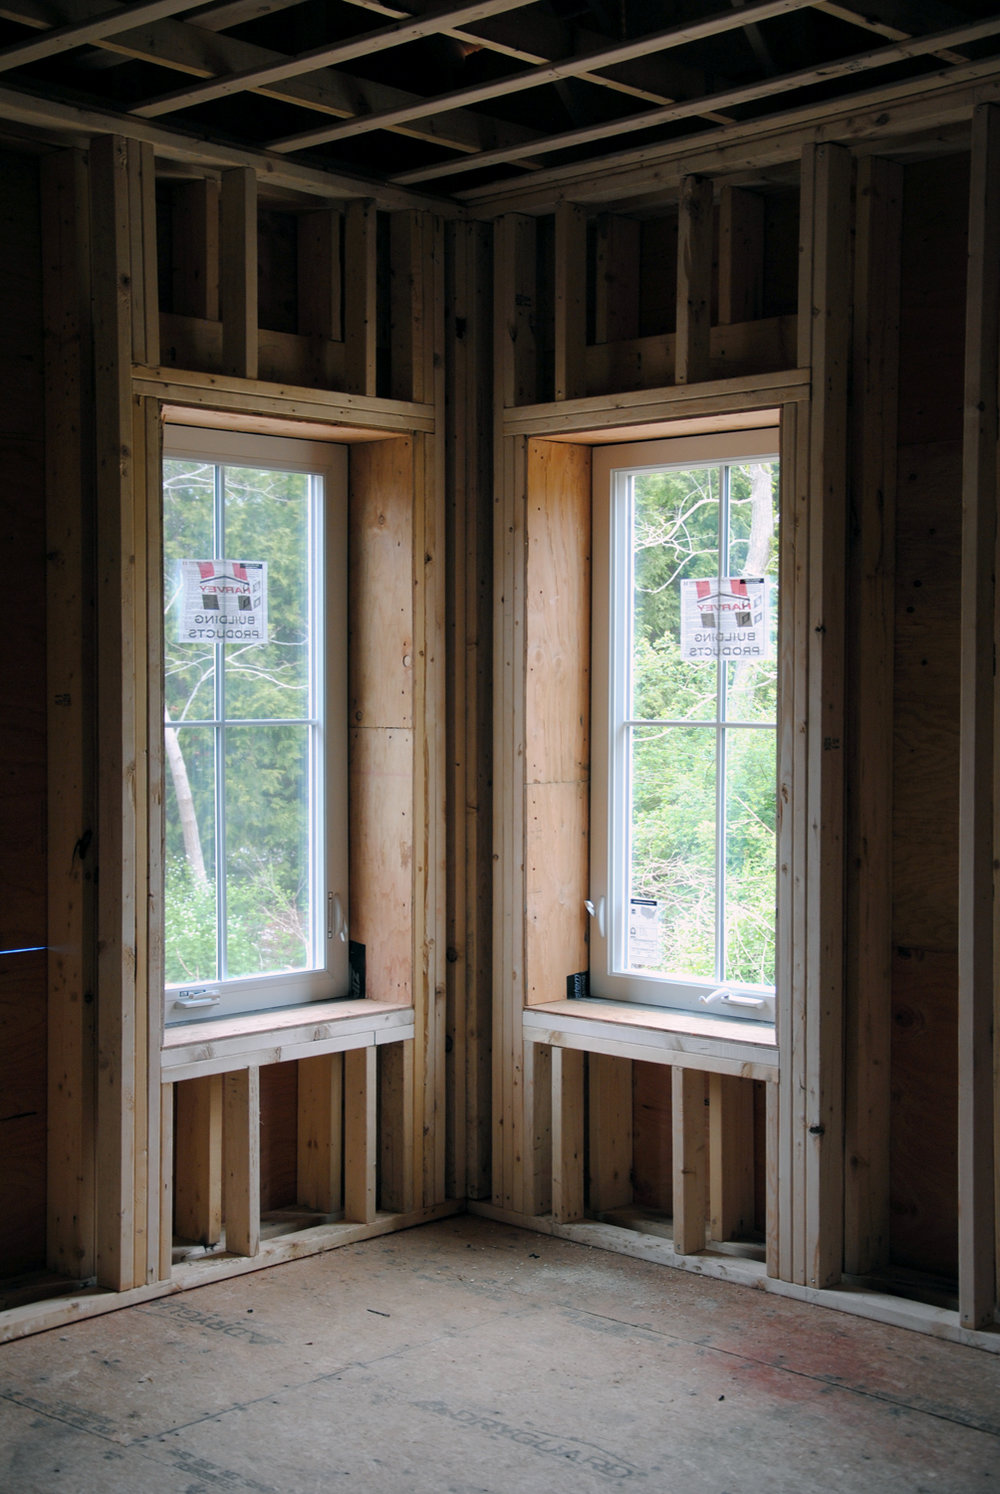 Triple Glazed Window and Double Framed Wall